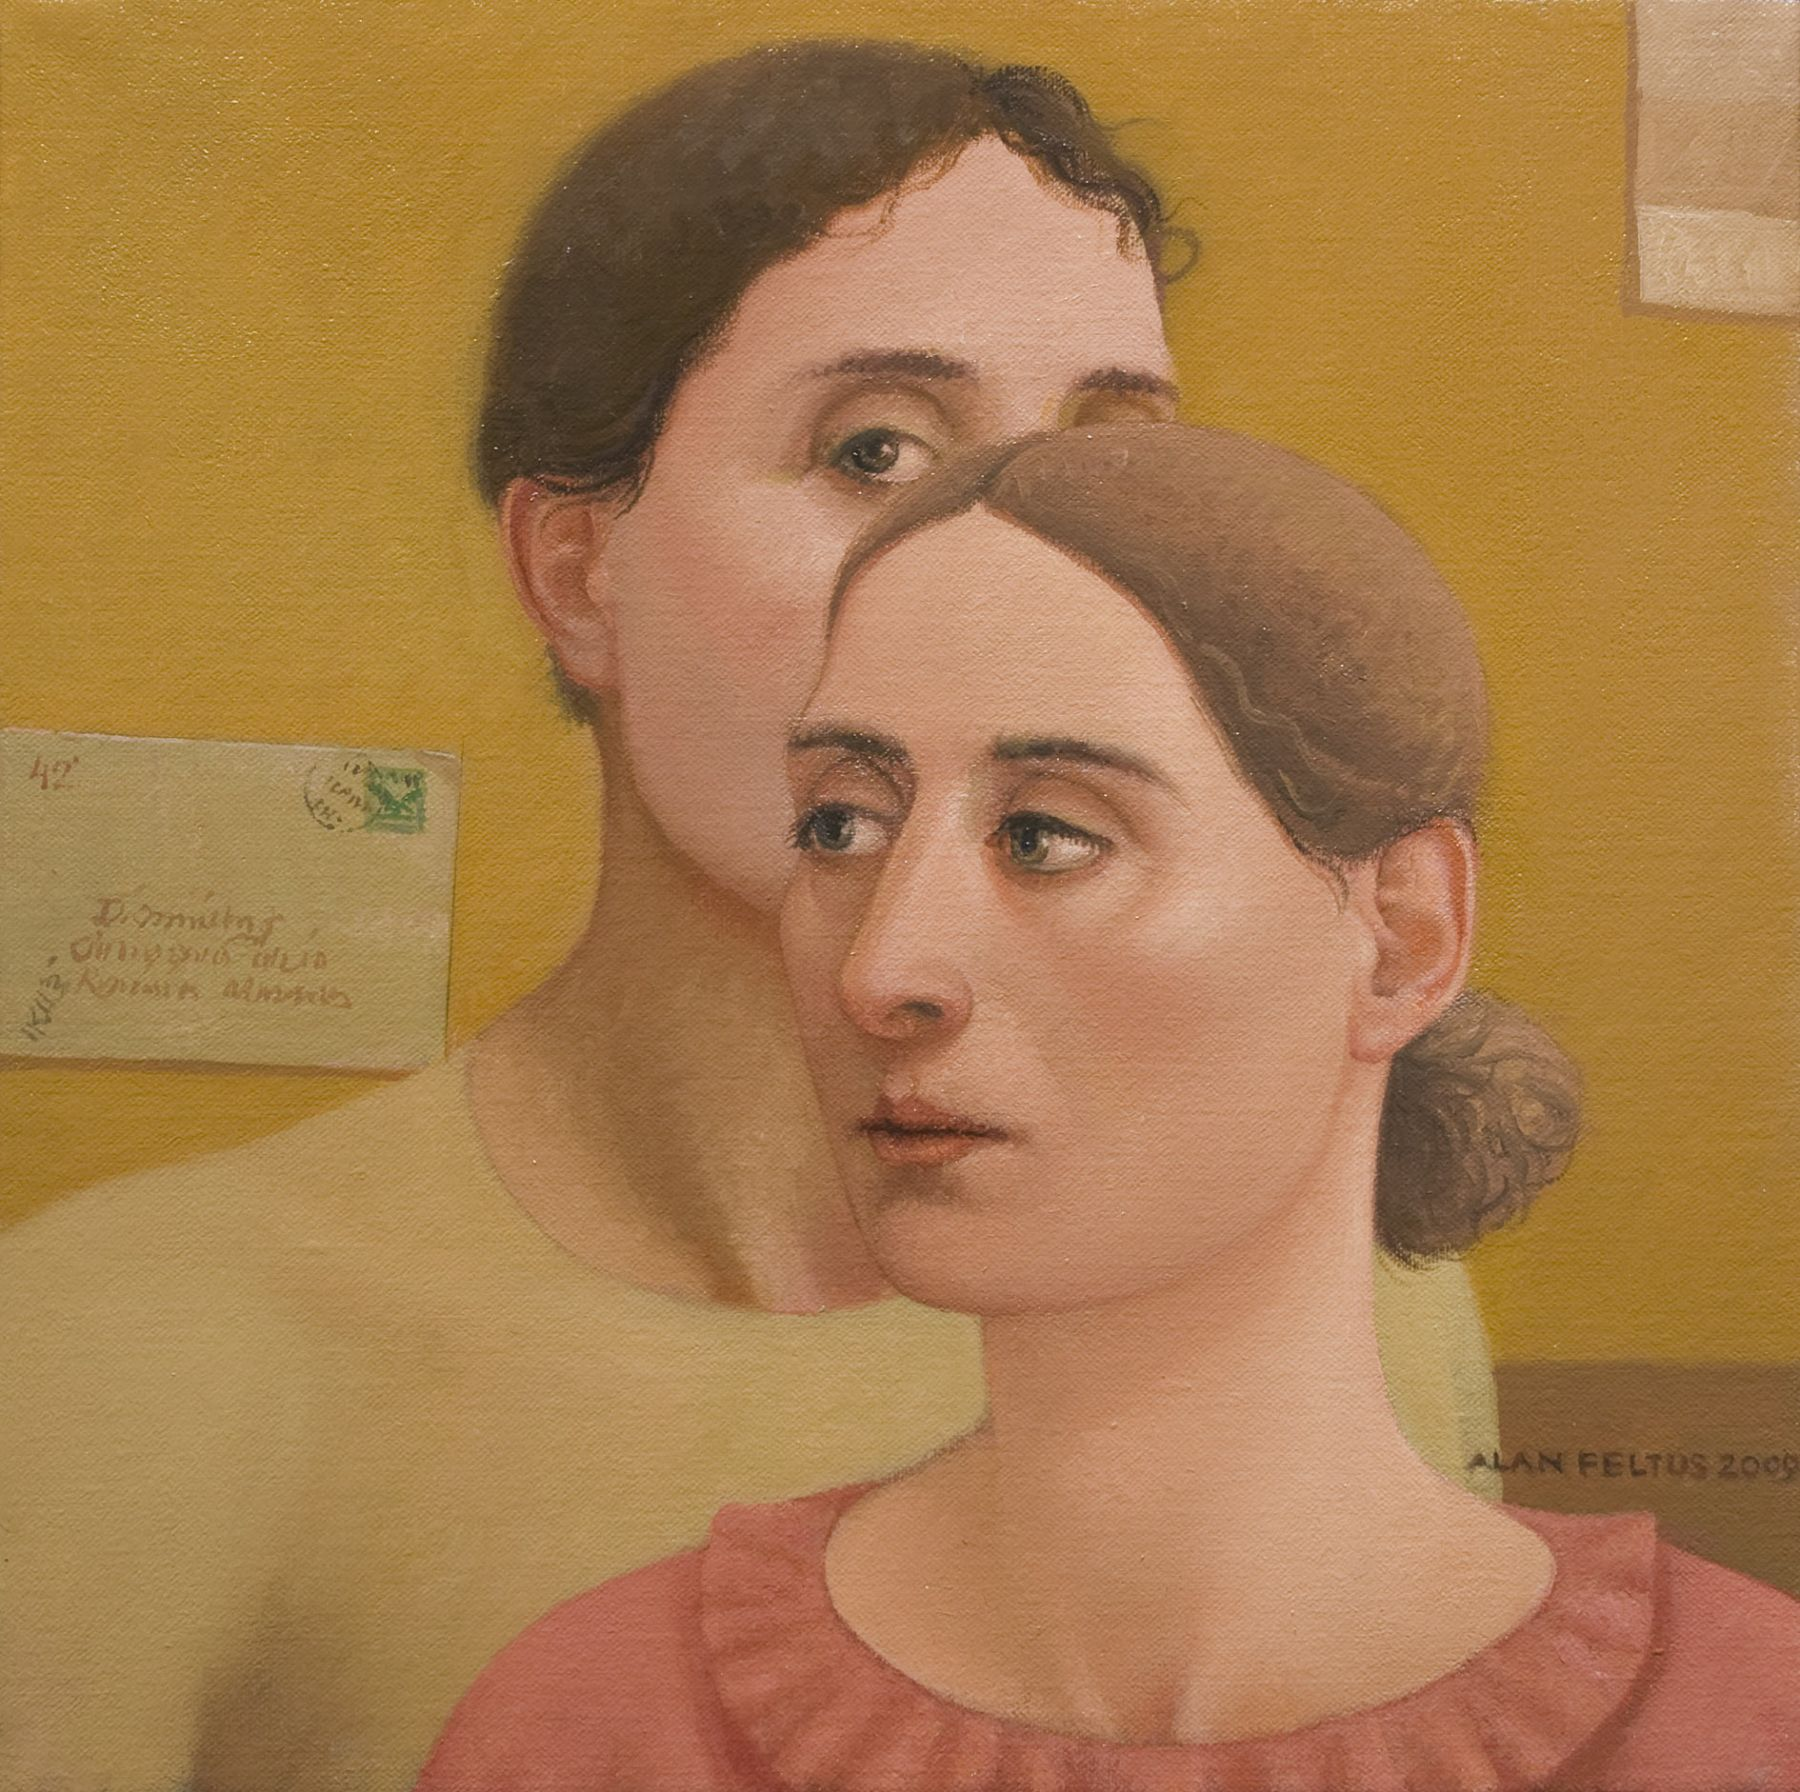 alan feltus, Doppio Ritratto, 2009, oil on canvas, 13 3/4 x 13 3/4 inches